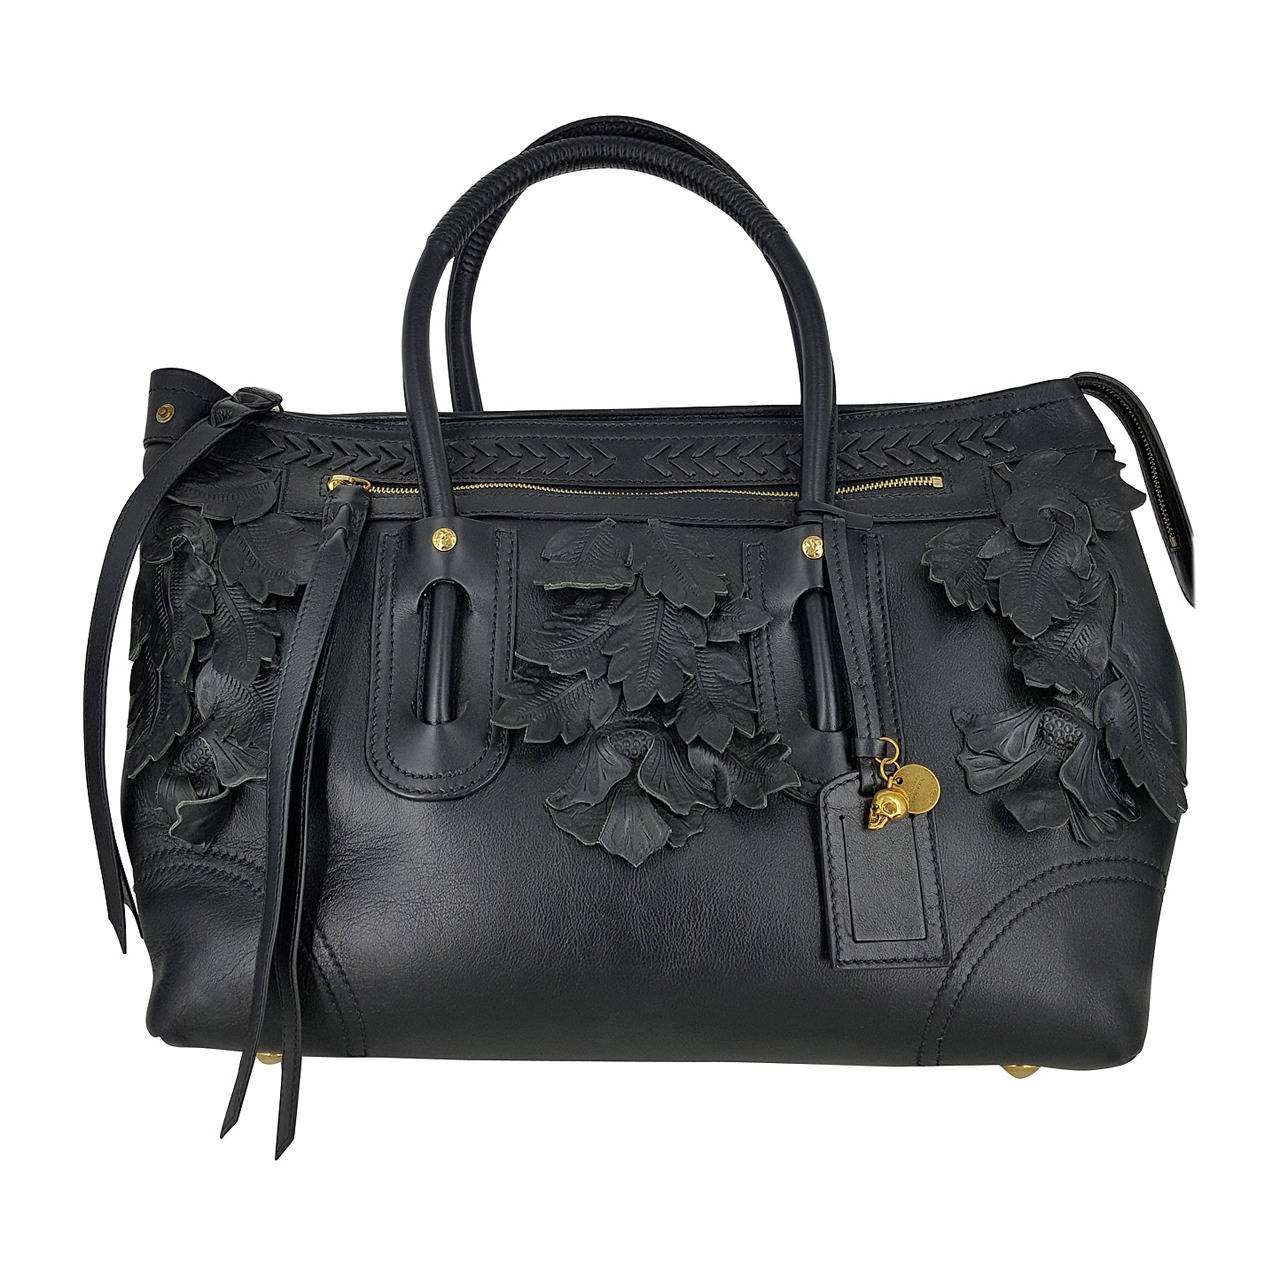 Xl Alexander Mcqueen Limited Edition Handbag With Leather